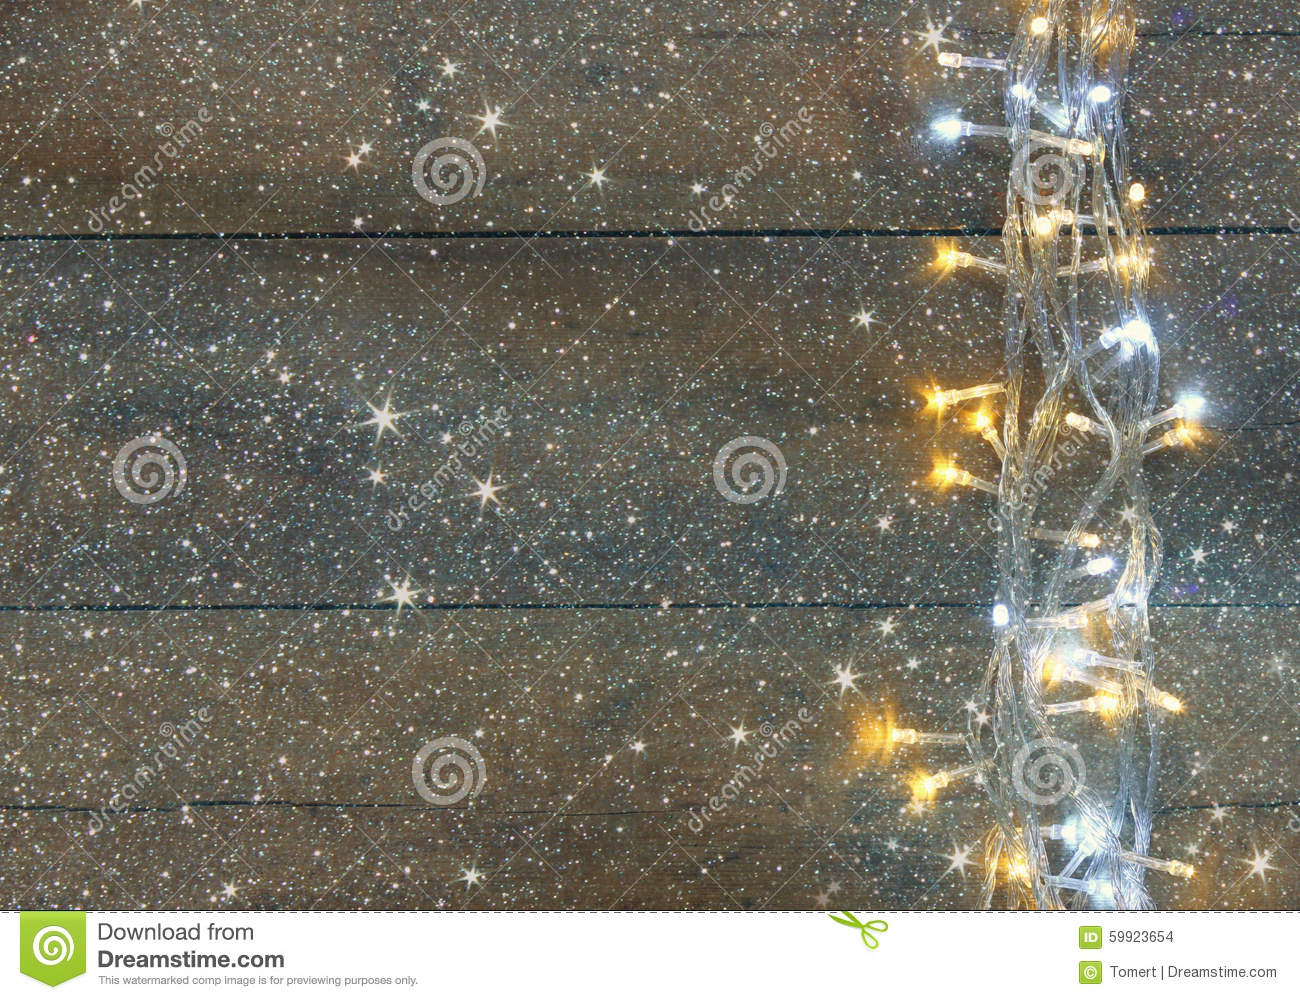 Christmas warm gold garland lights on wooden rustic background. filtered image with glitter overlay.